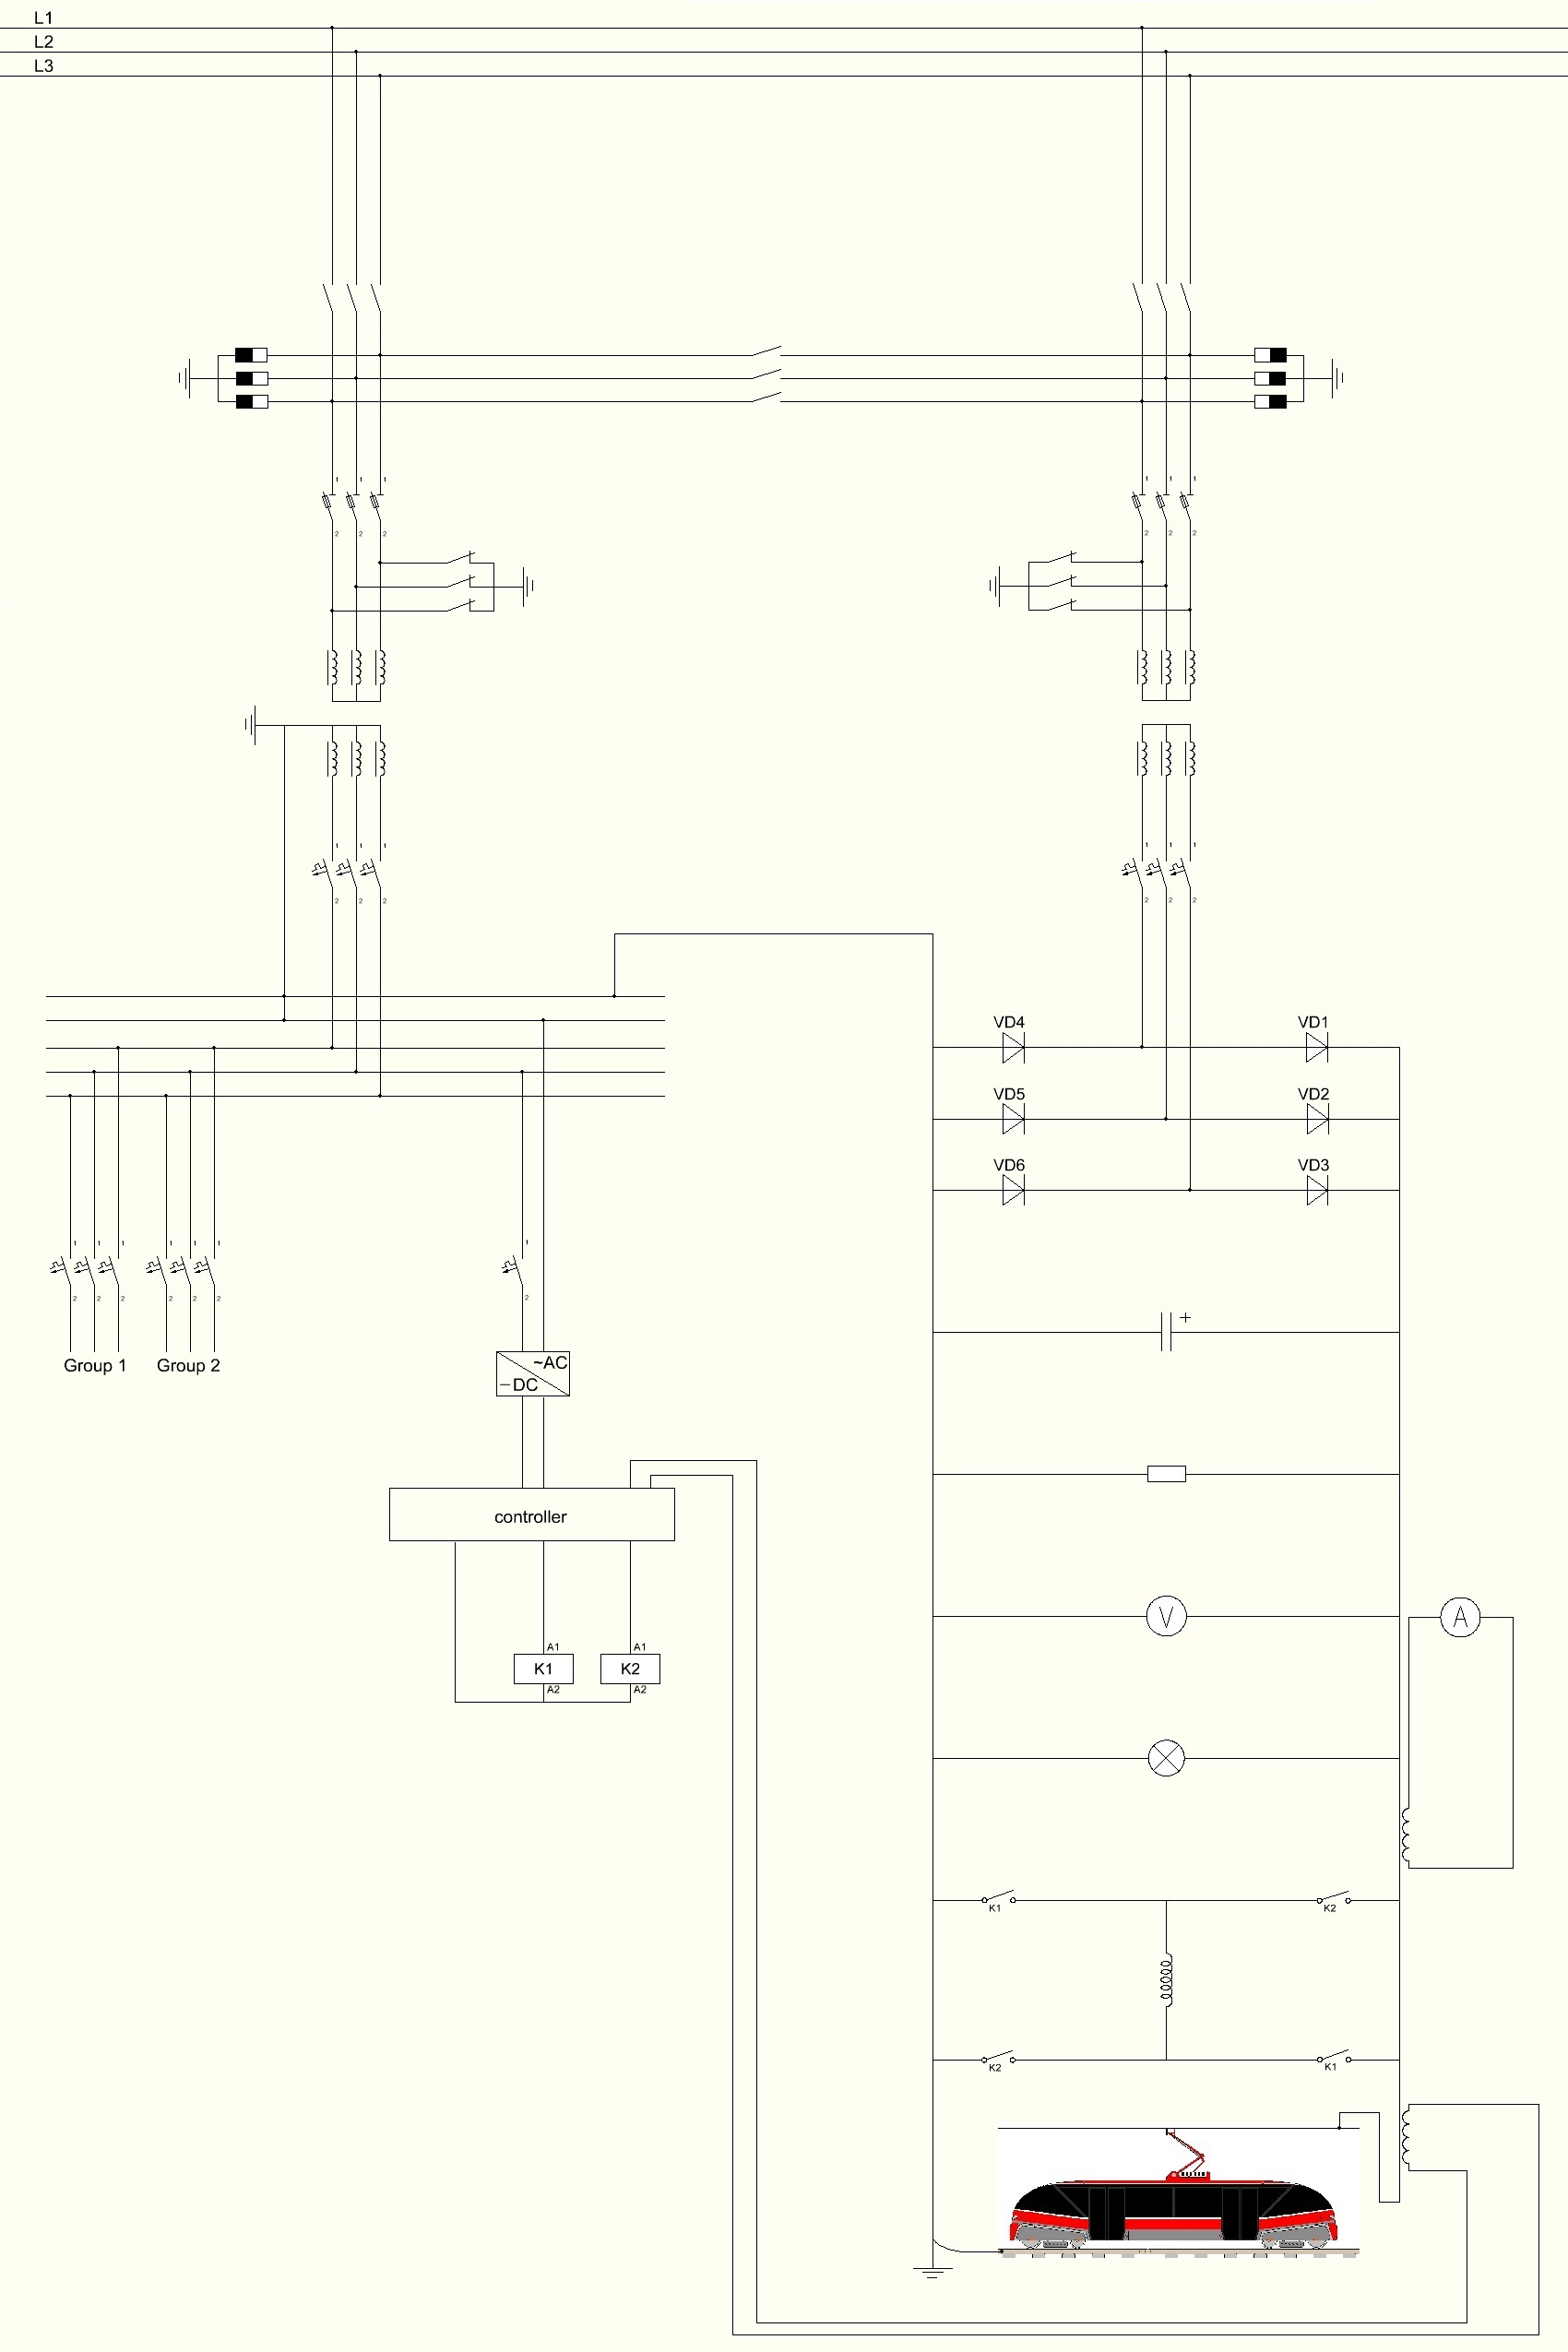 hight resolution of file wiring diagram of traction substation for dummies jpg substation yard light wiring diagram file wiring